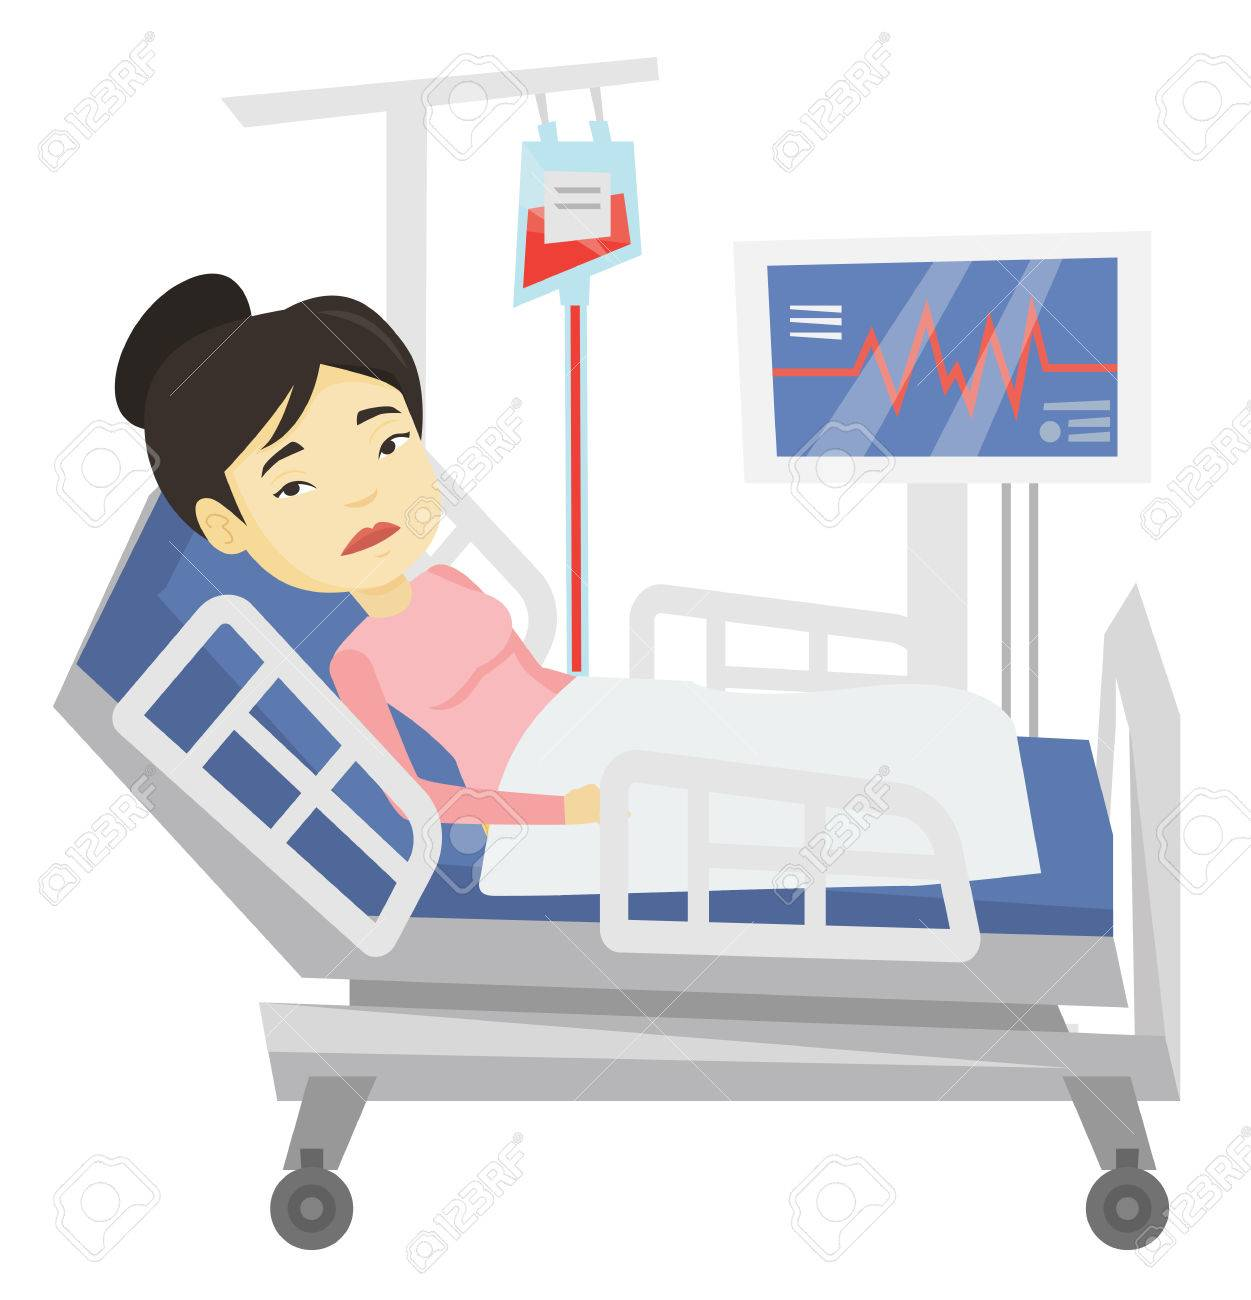 Superieur Vector   Woman Lying In Hospital Bed Vector Illustration.